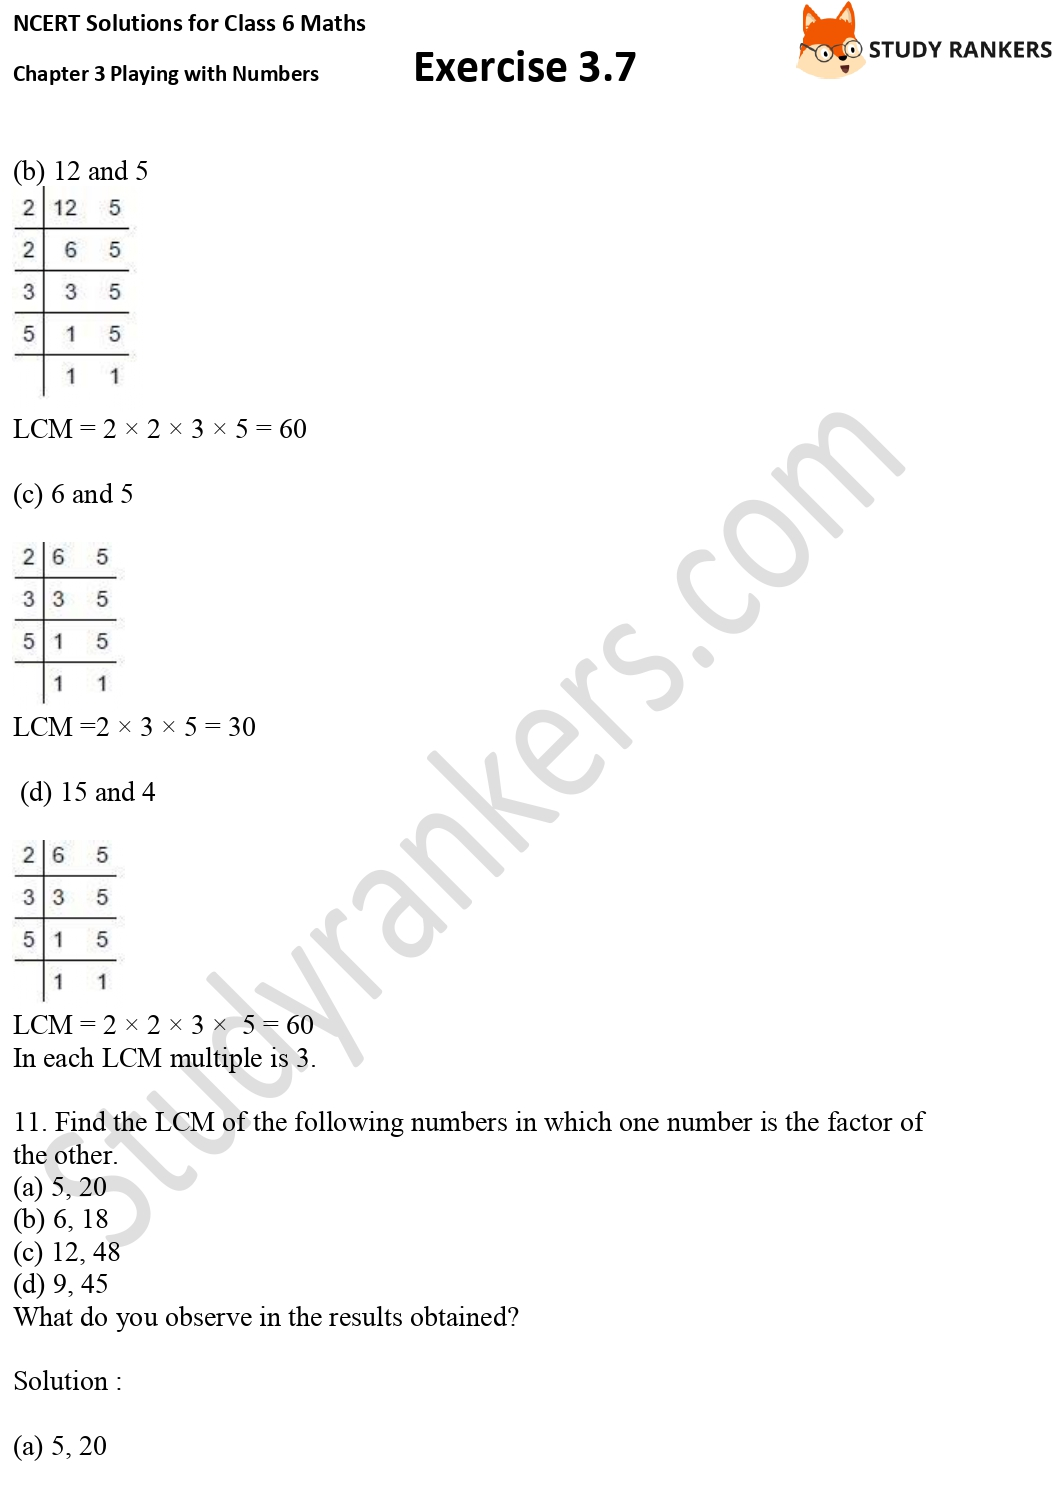 NCERT Solutions for Class 6 Maths Chapter 3 Playing with Numbers Exercise 3.7 Part 5